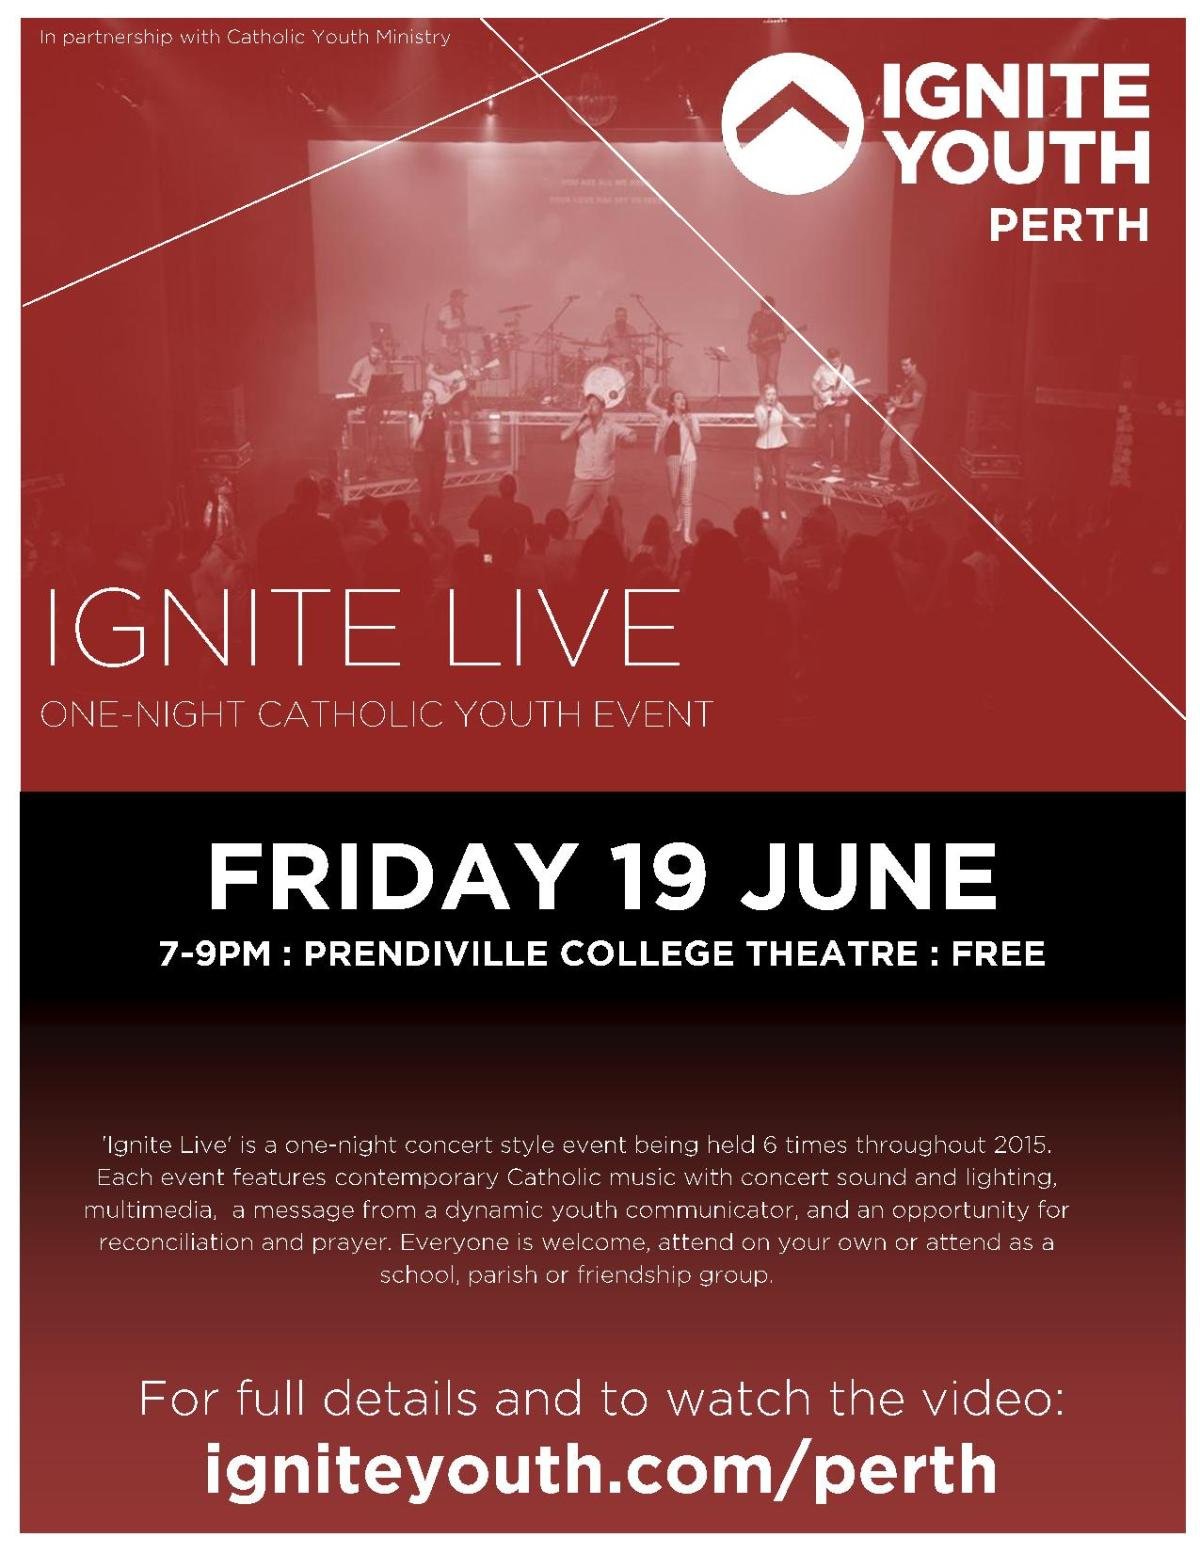 Ignite_Live_19_June_2015_Flyer-page-001